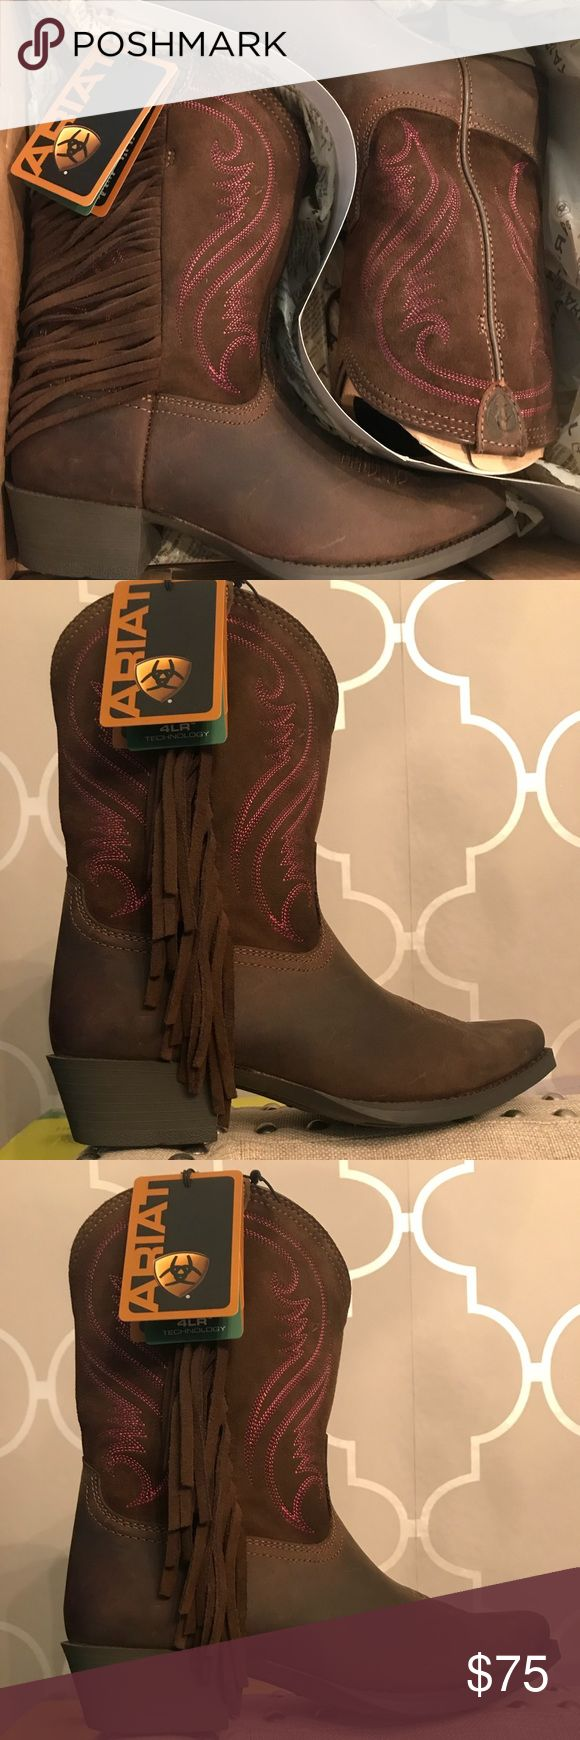 Girls brown and pink cowboy boots Brand new never worn! Size 3 in kids size! In the box still! Ariat Shoes Boots